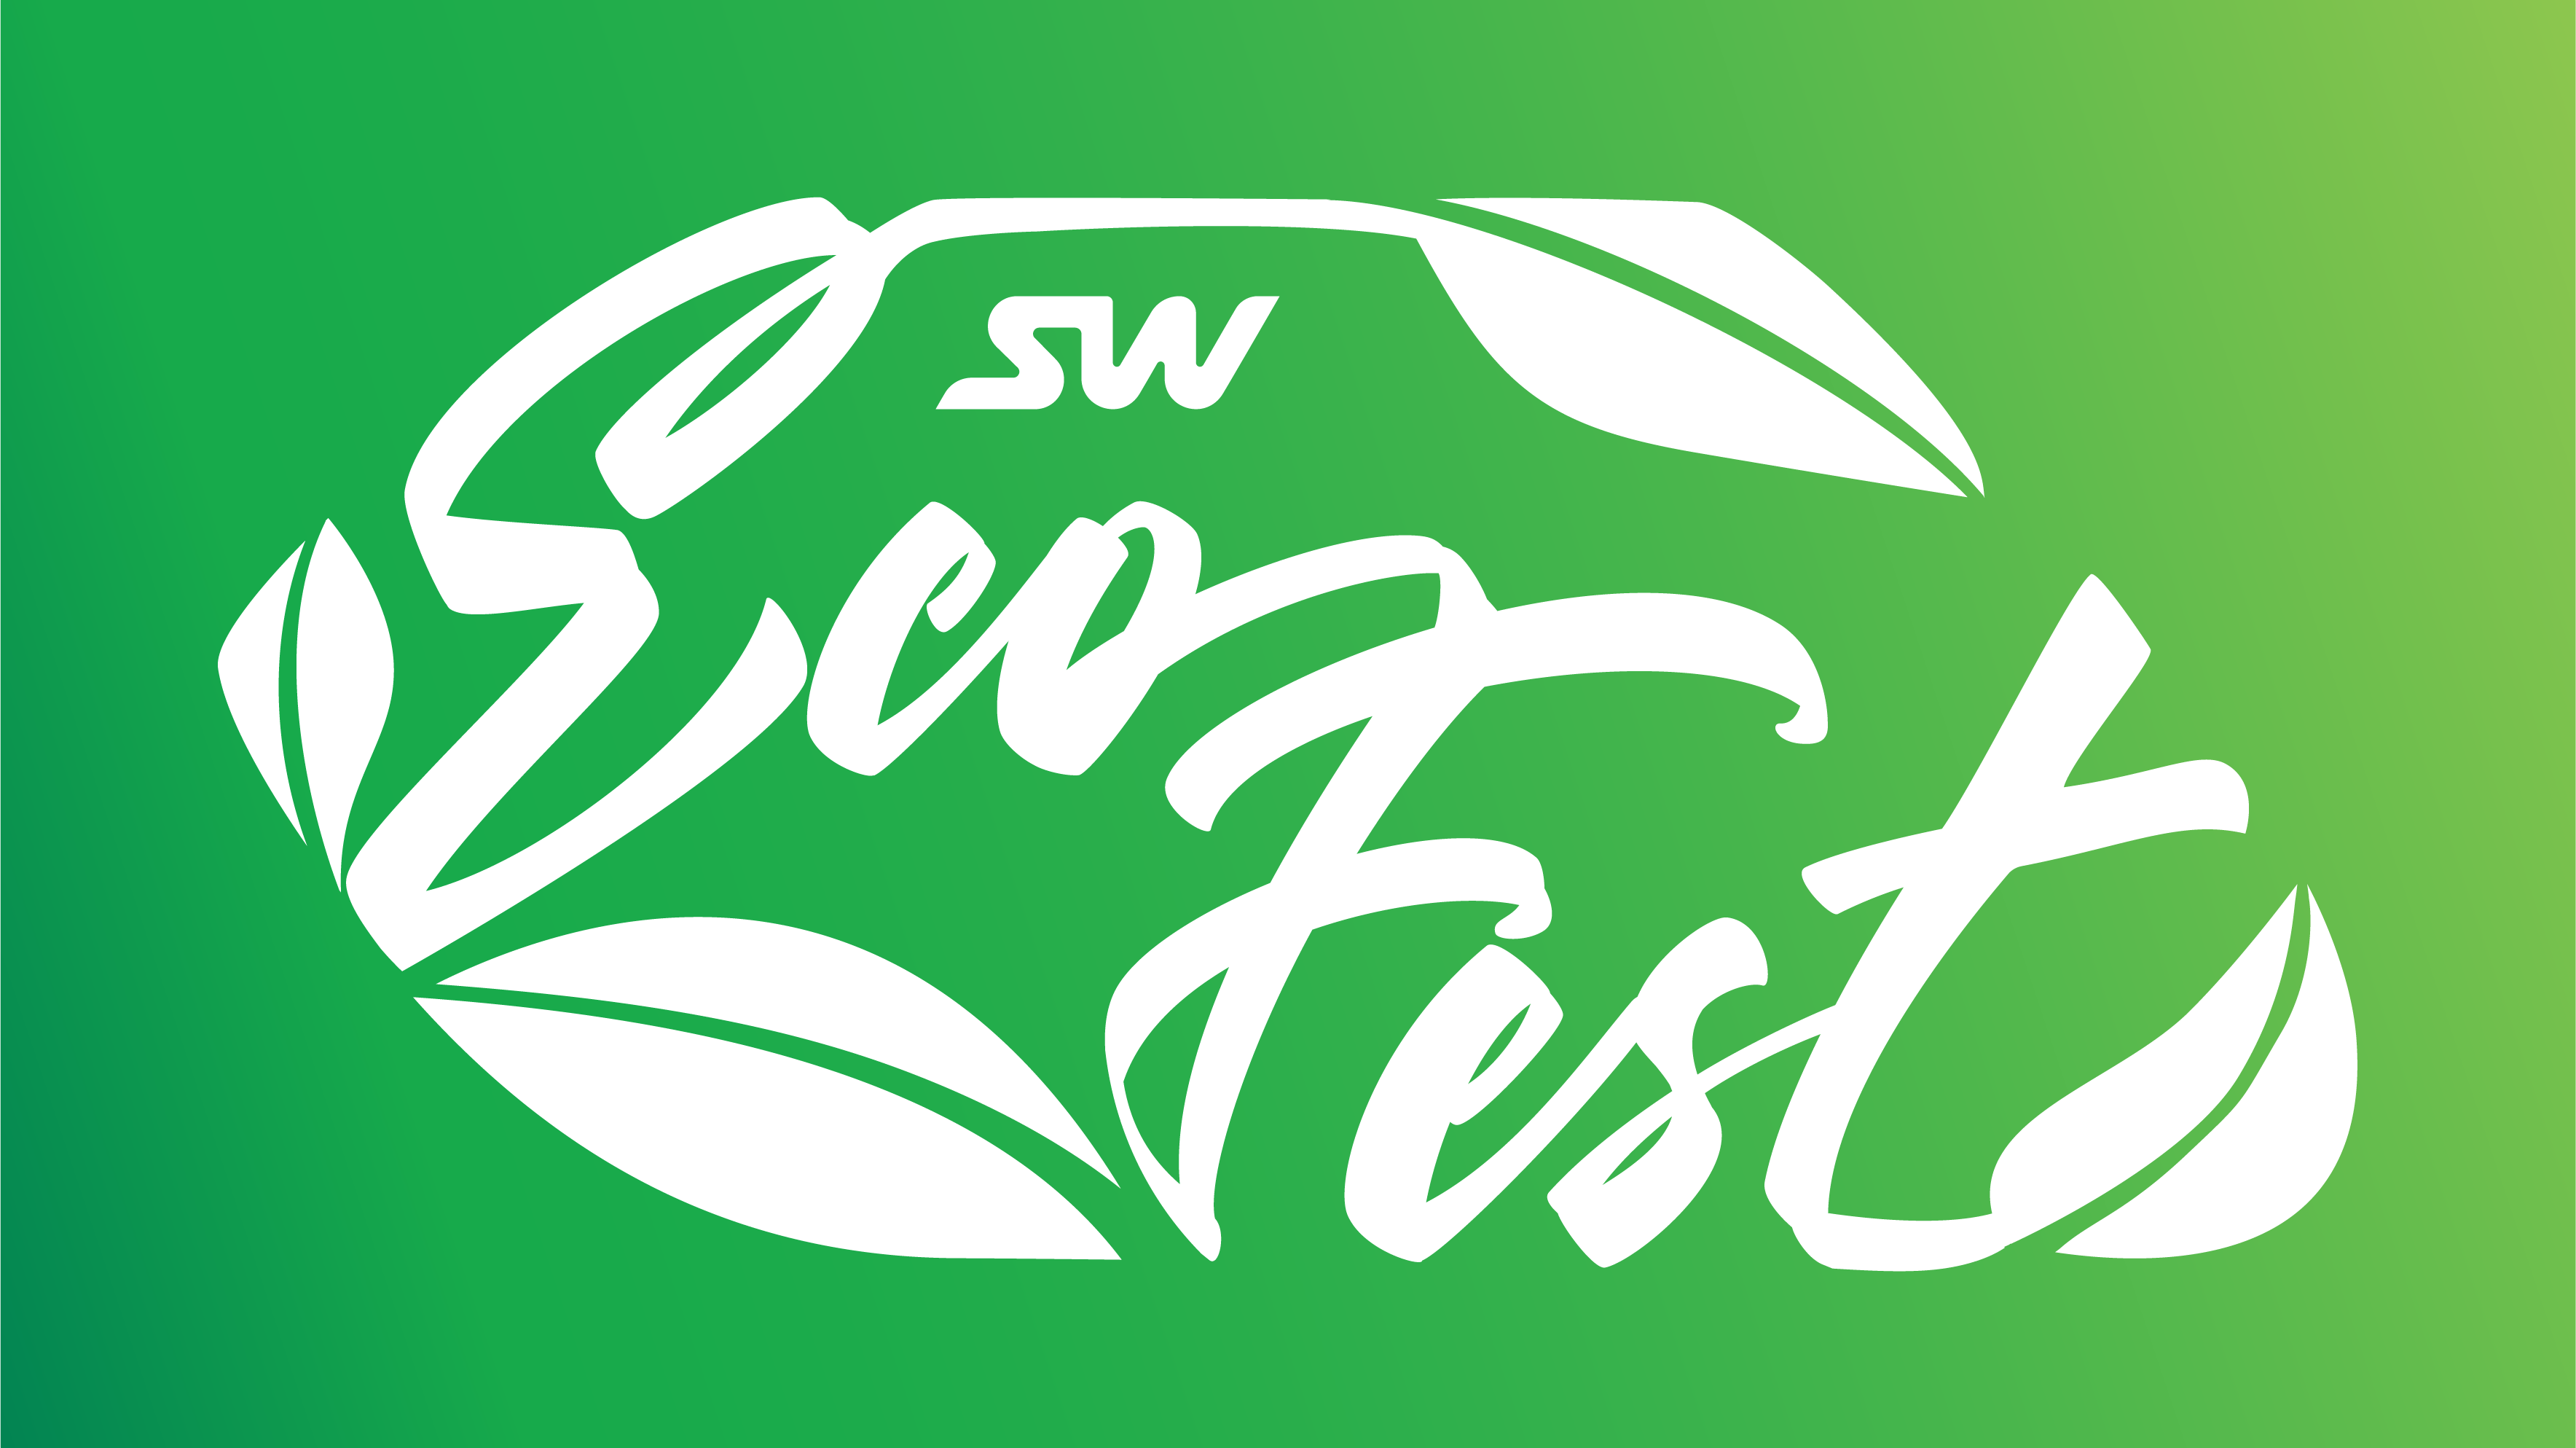 EcoFest 2018: The Date is set